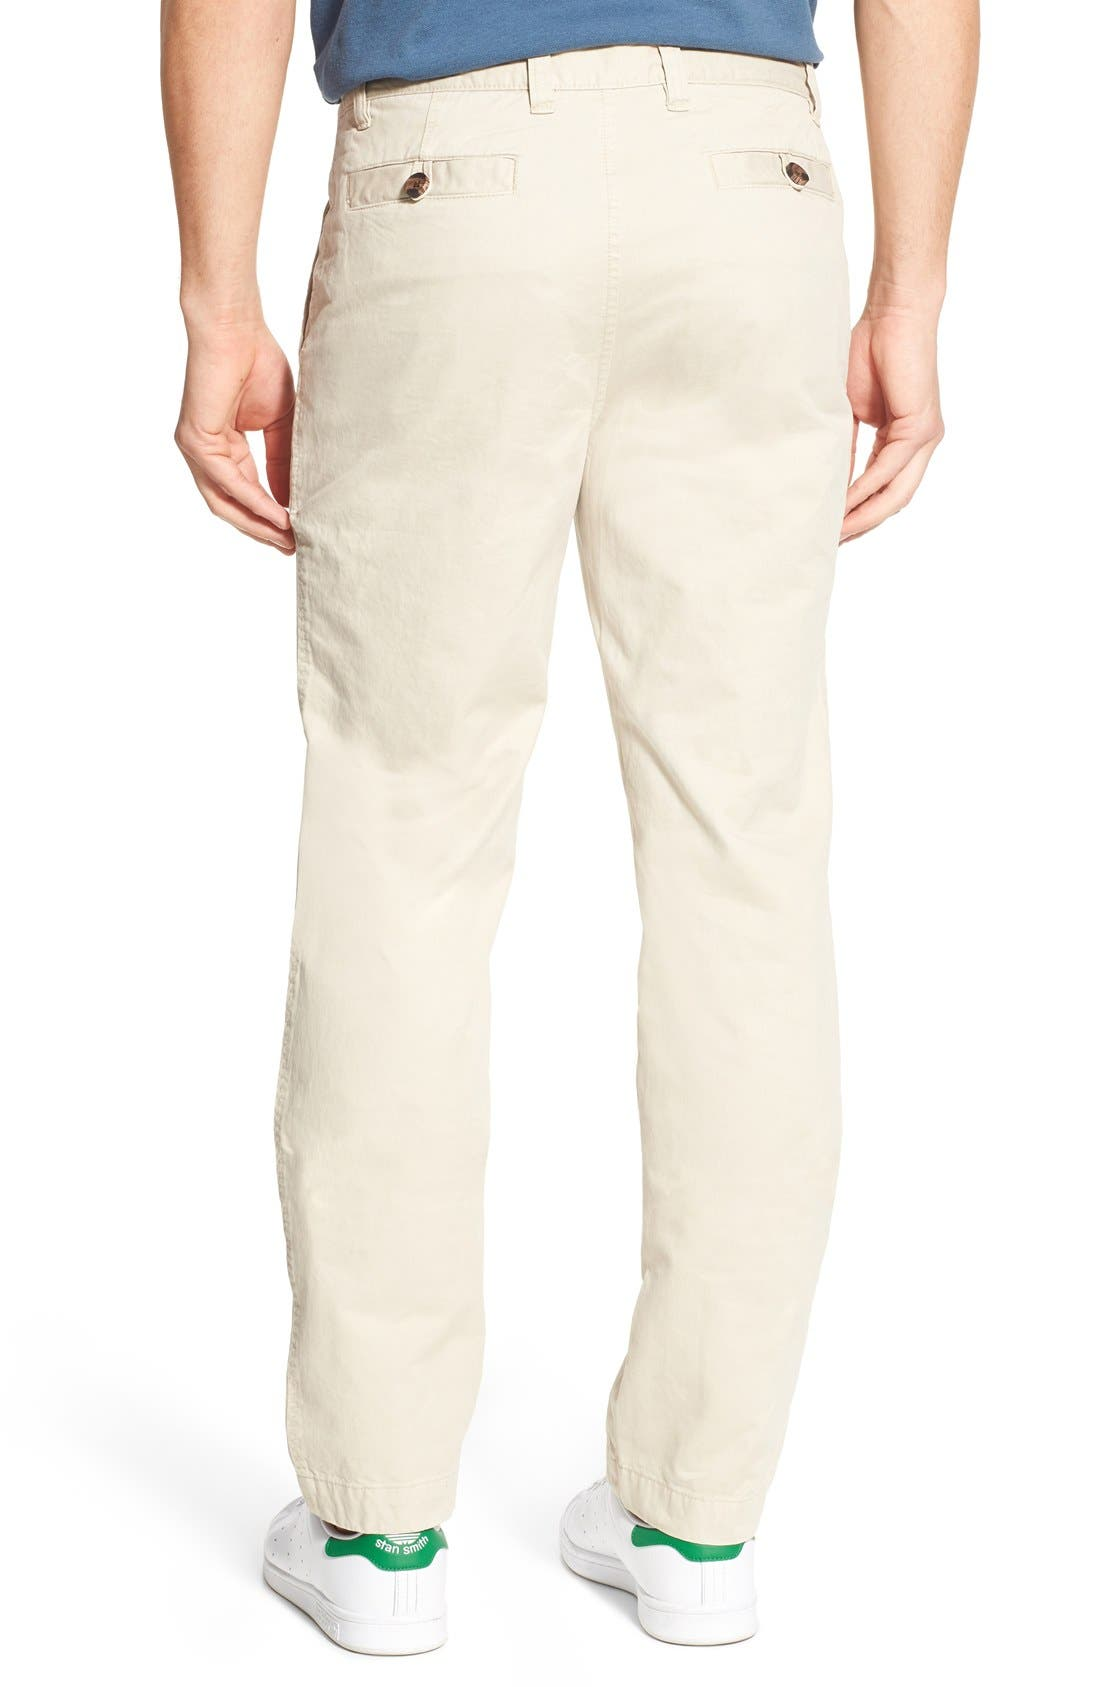 'Sahara' Trim Fit Vintage Washed Twill Chinos,                             Alternate thumbnail 2, color,                             270